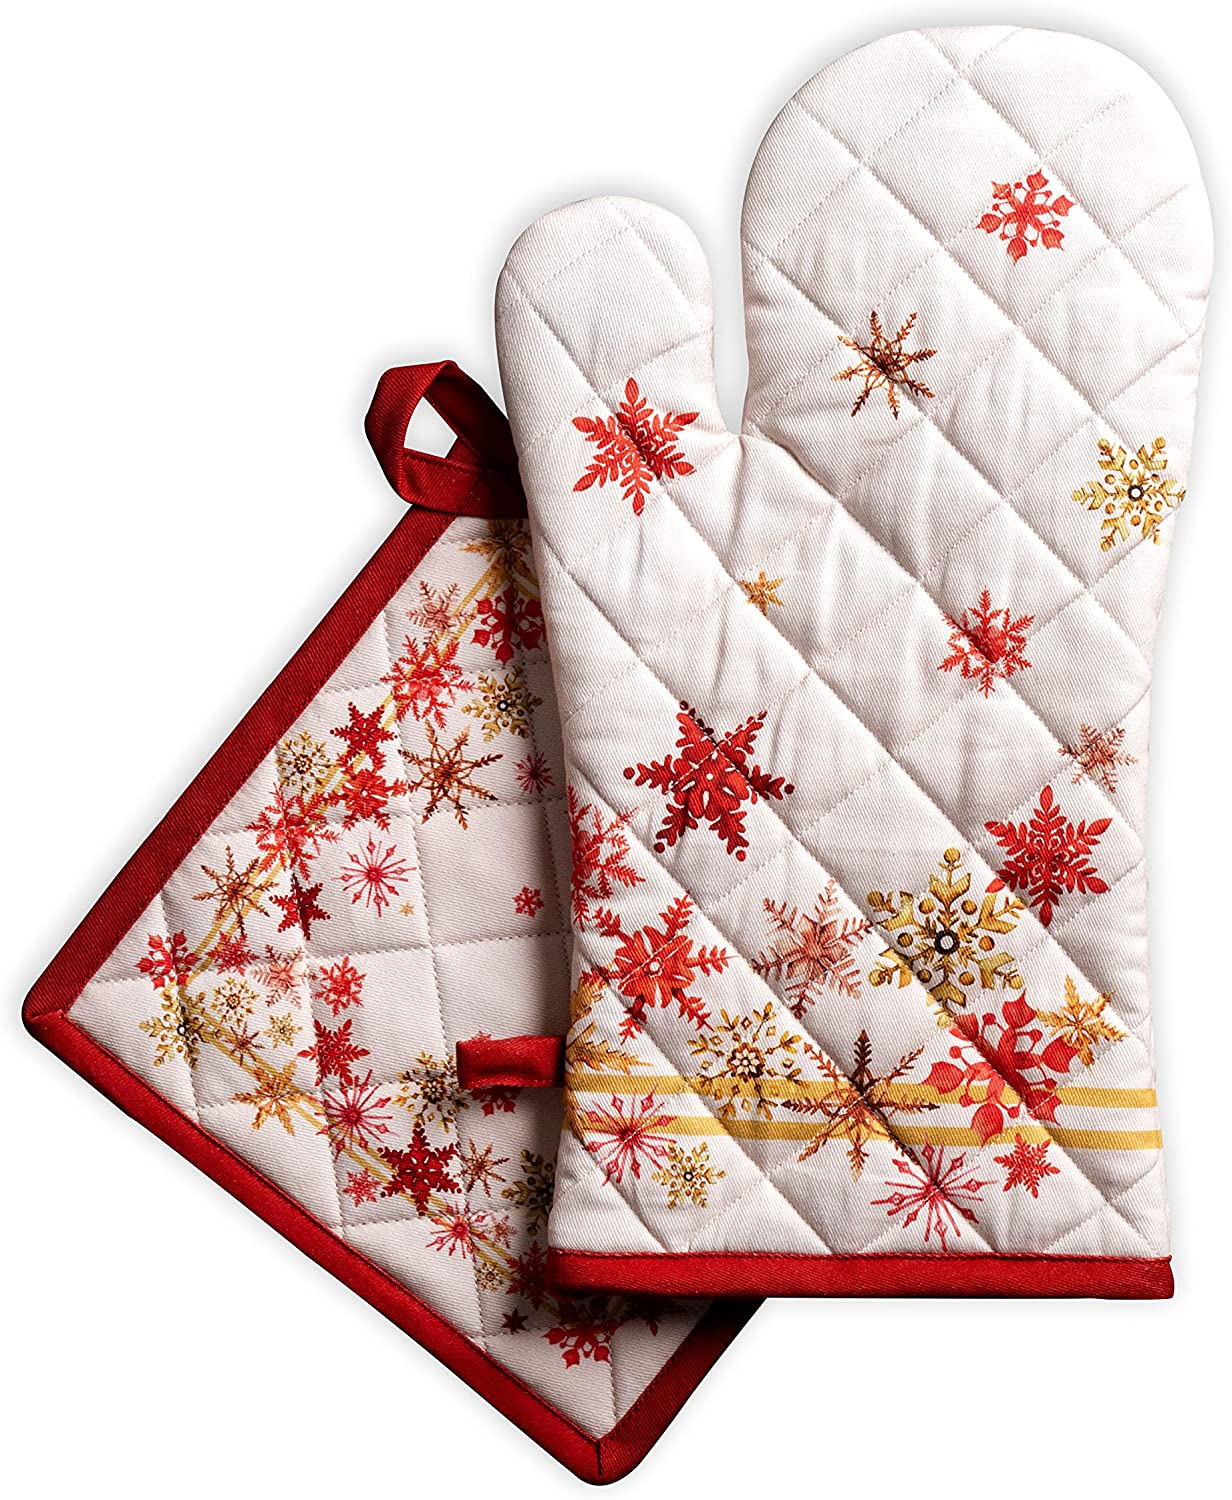 Maison d' Hermine Crystal Star 100% Cotton Set of Oven Mitt (7.5 Inch by 13 Inch) and Pot Holder (8 Inch by 8 Inch). Perfect for Thanksgiving and Christmas